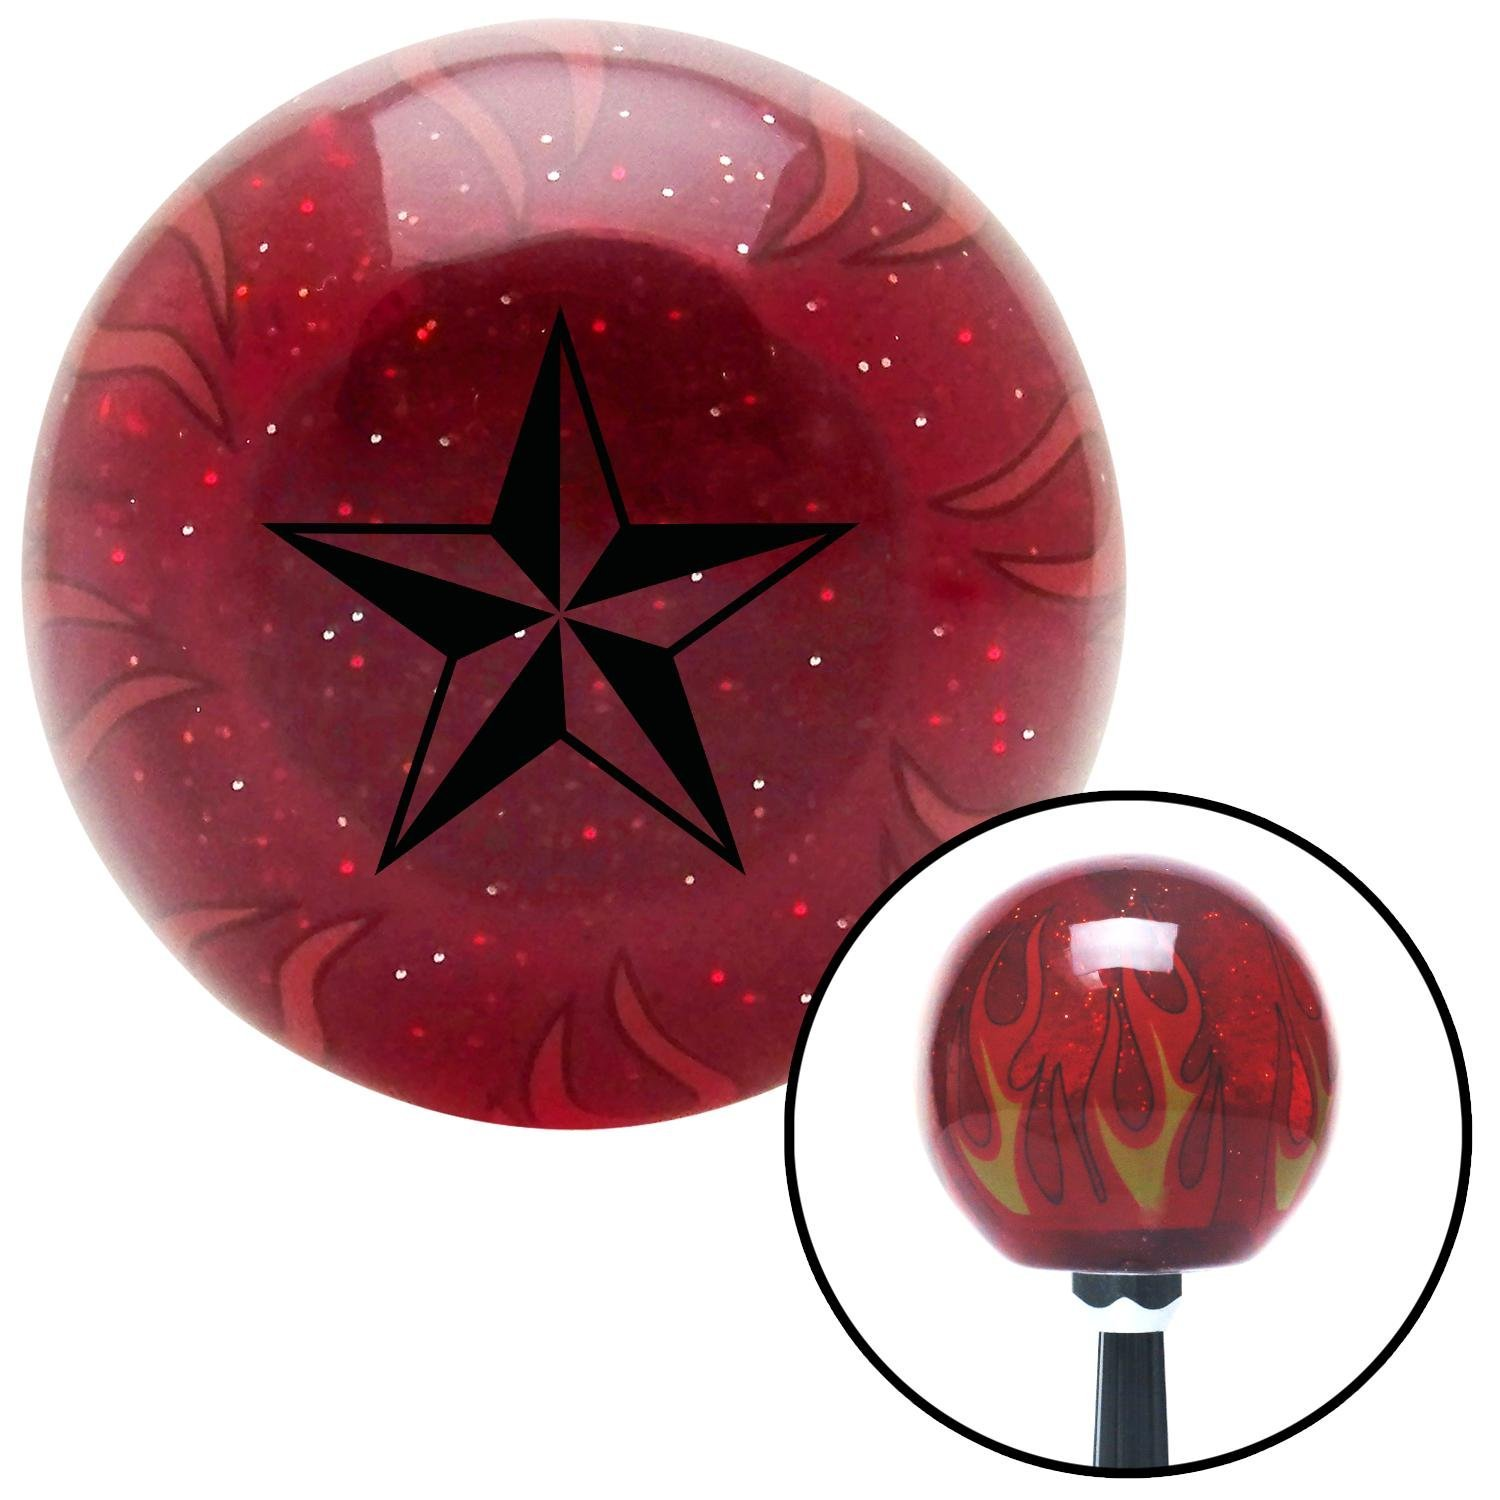 American Shifter 239447 Red Flame Metal Flake Shift Knob with M16 x 1.5 Insert Black 5 Point 3-D Star